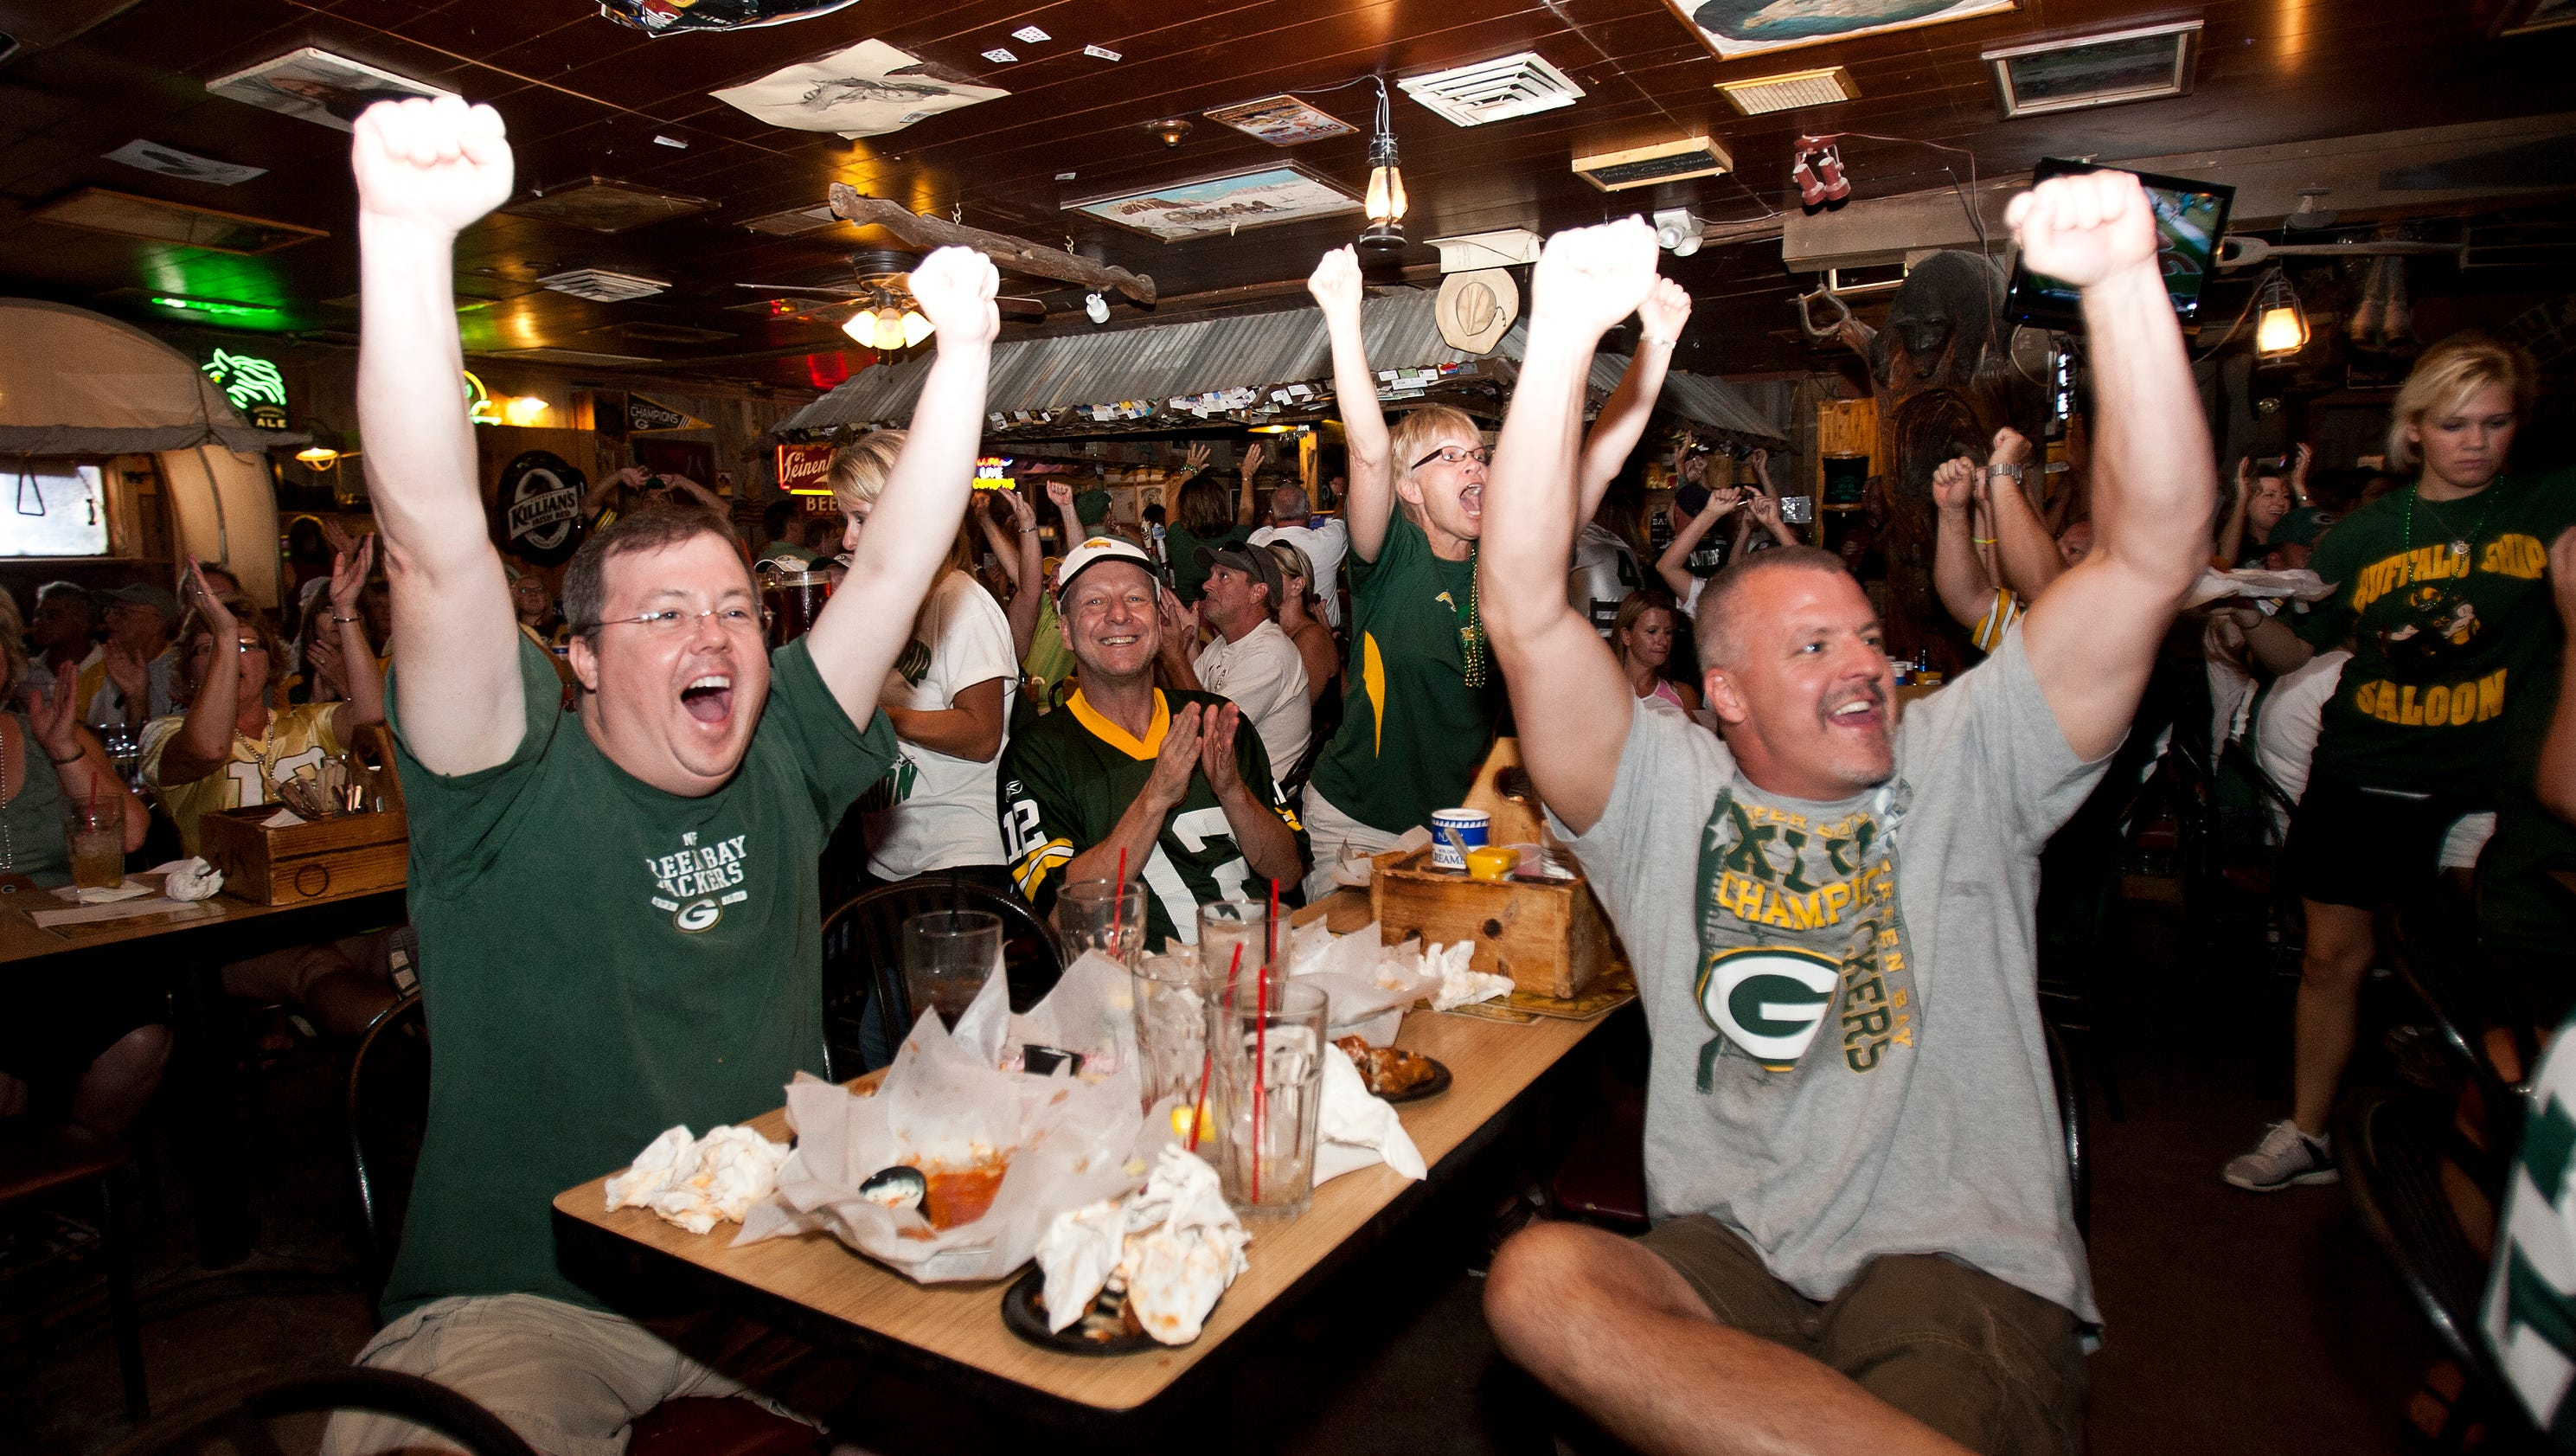 K Chenpantry list of area sports bars by nfl team